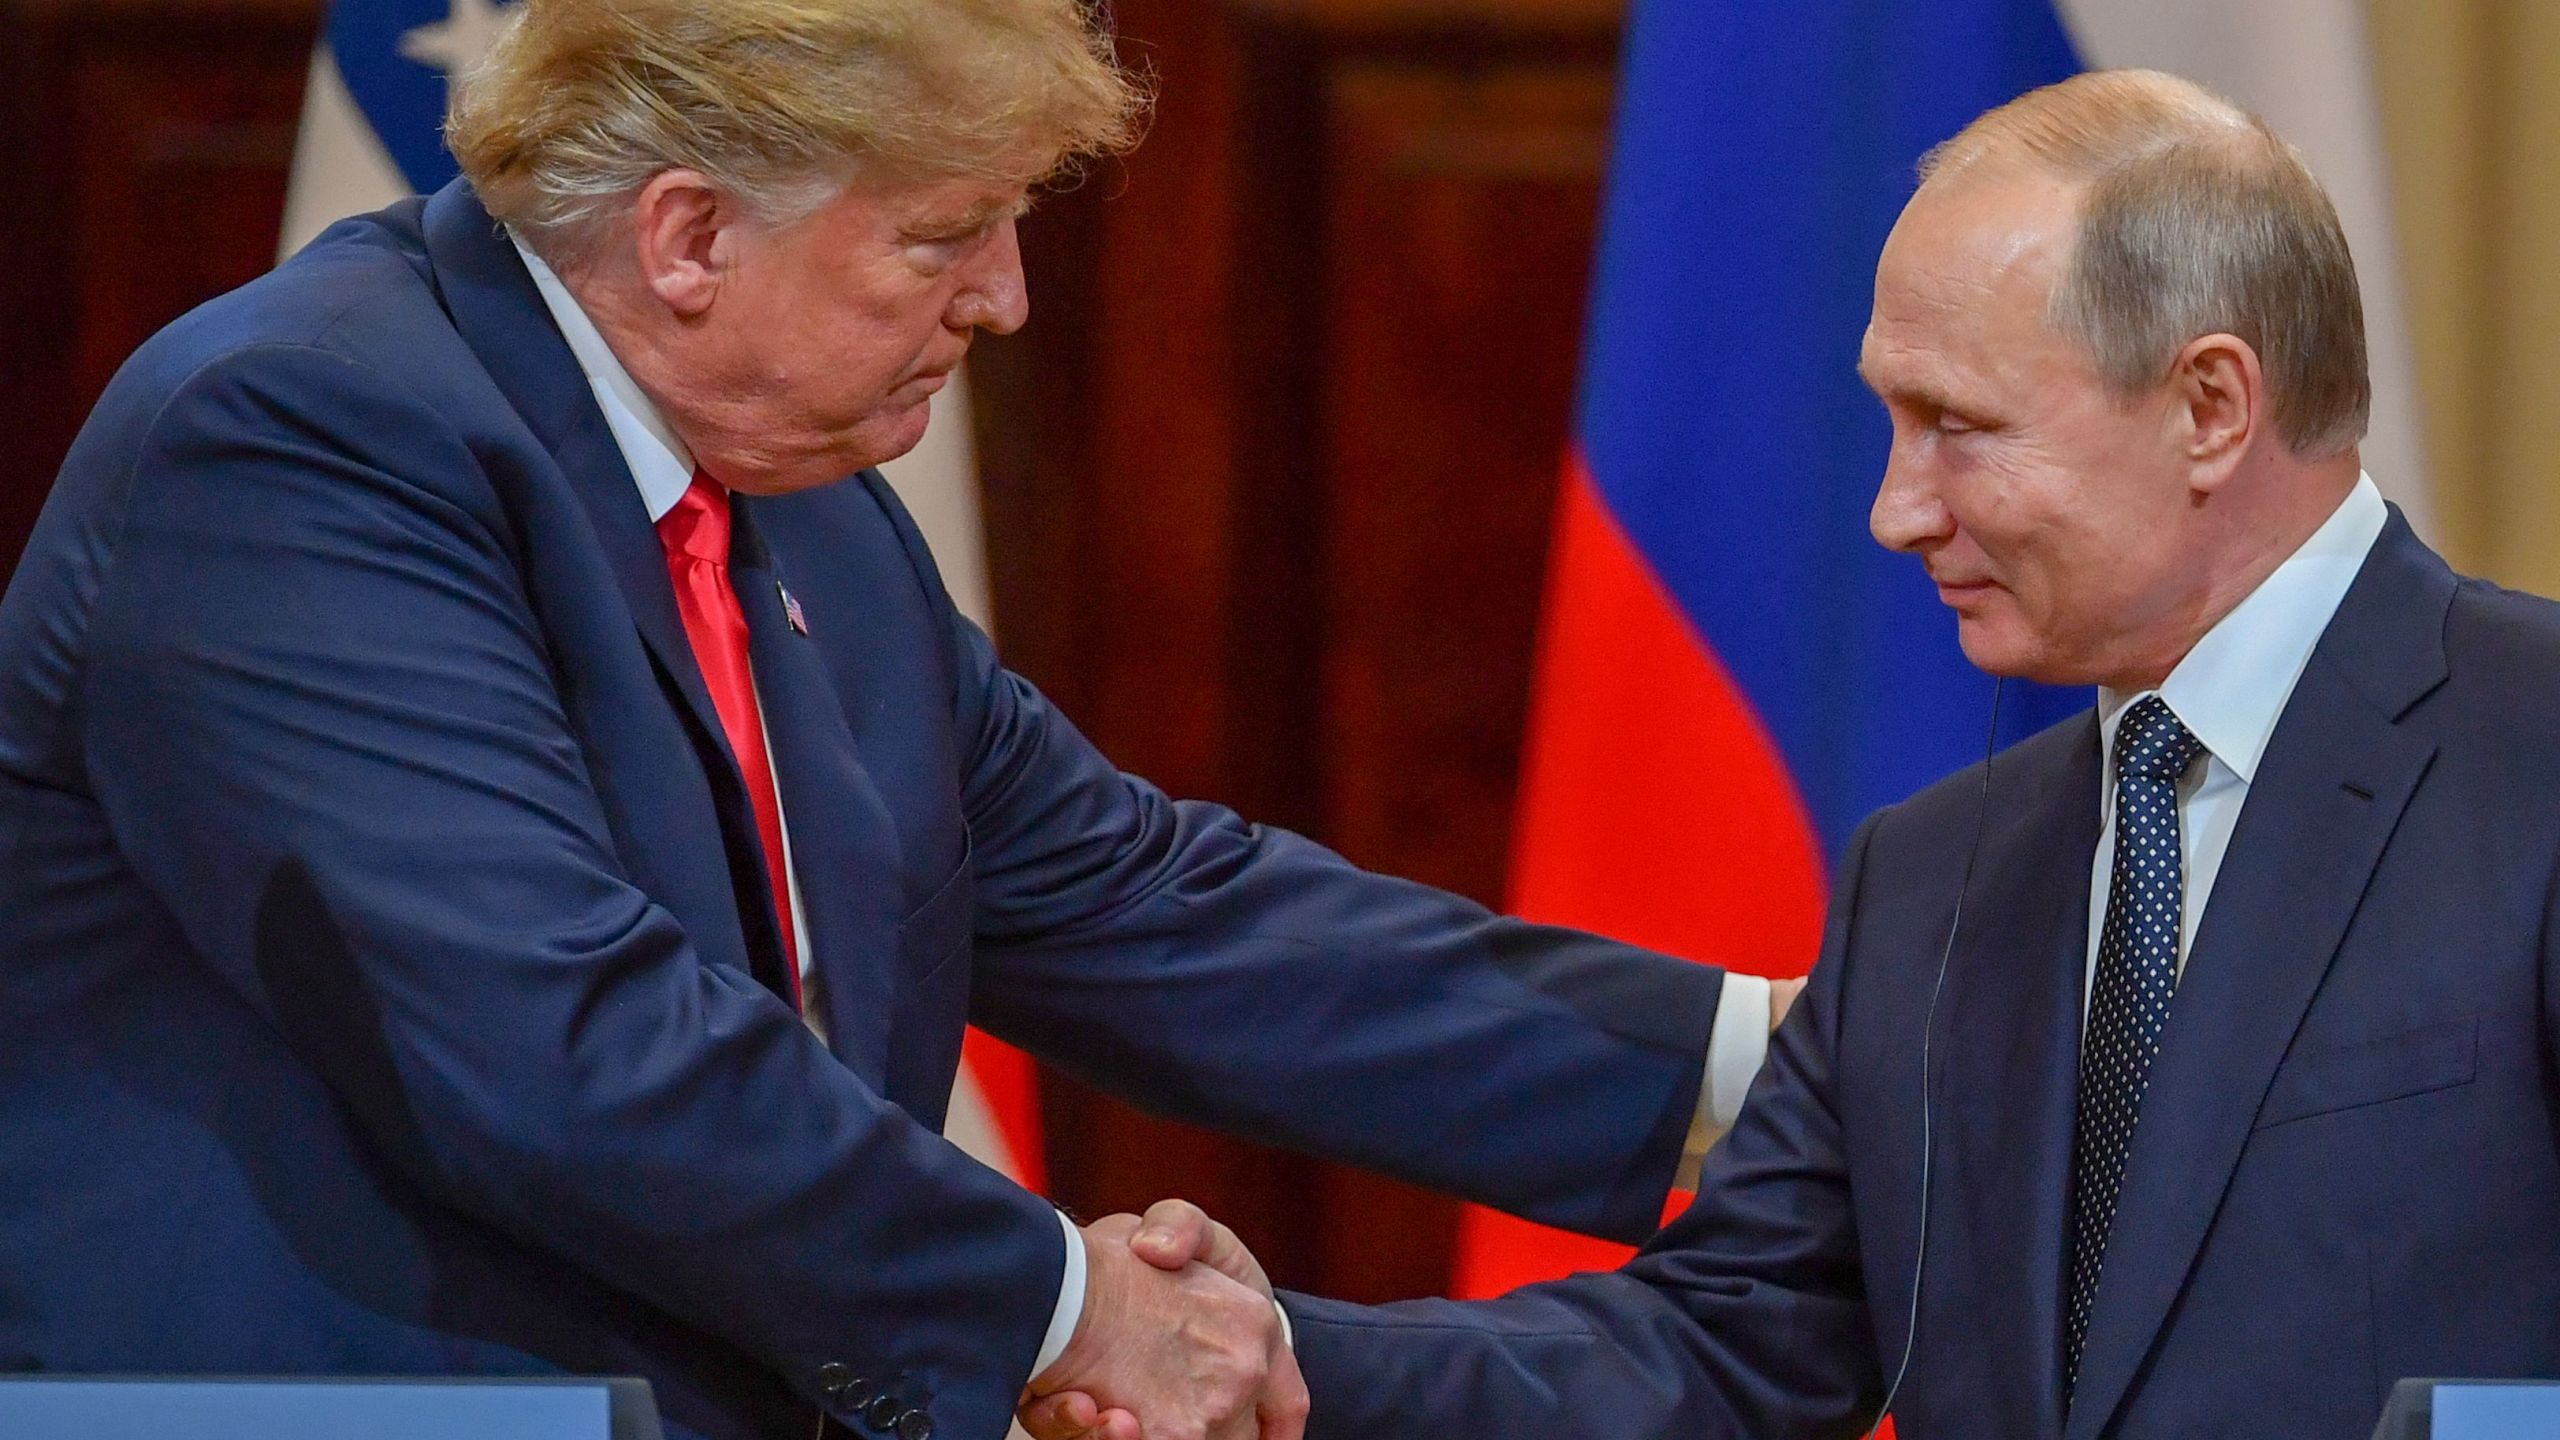 US President Donald Trump and Russia's President Vladimir Putin shake hands before attending a joint press conference after a meeting at the Presidential Palace in Helsinki, on July 16, 2018. (Credit: YURI KADOBNOV/AFP/Getty Images)